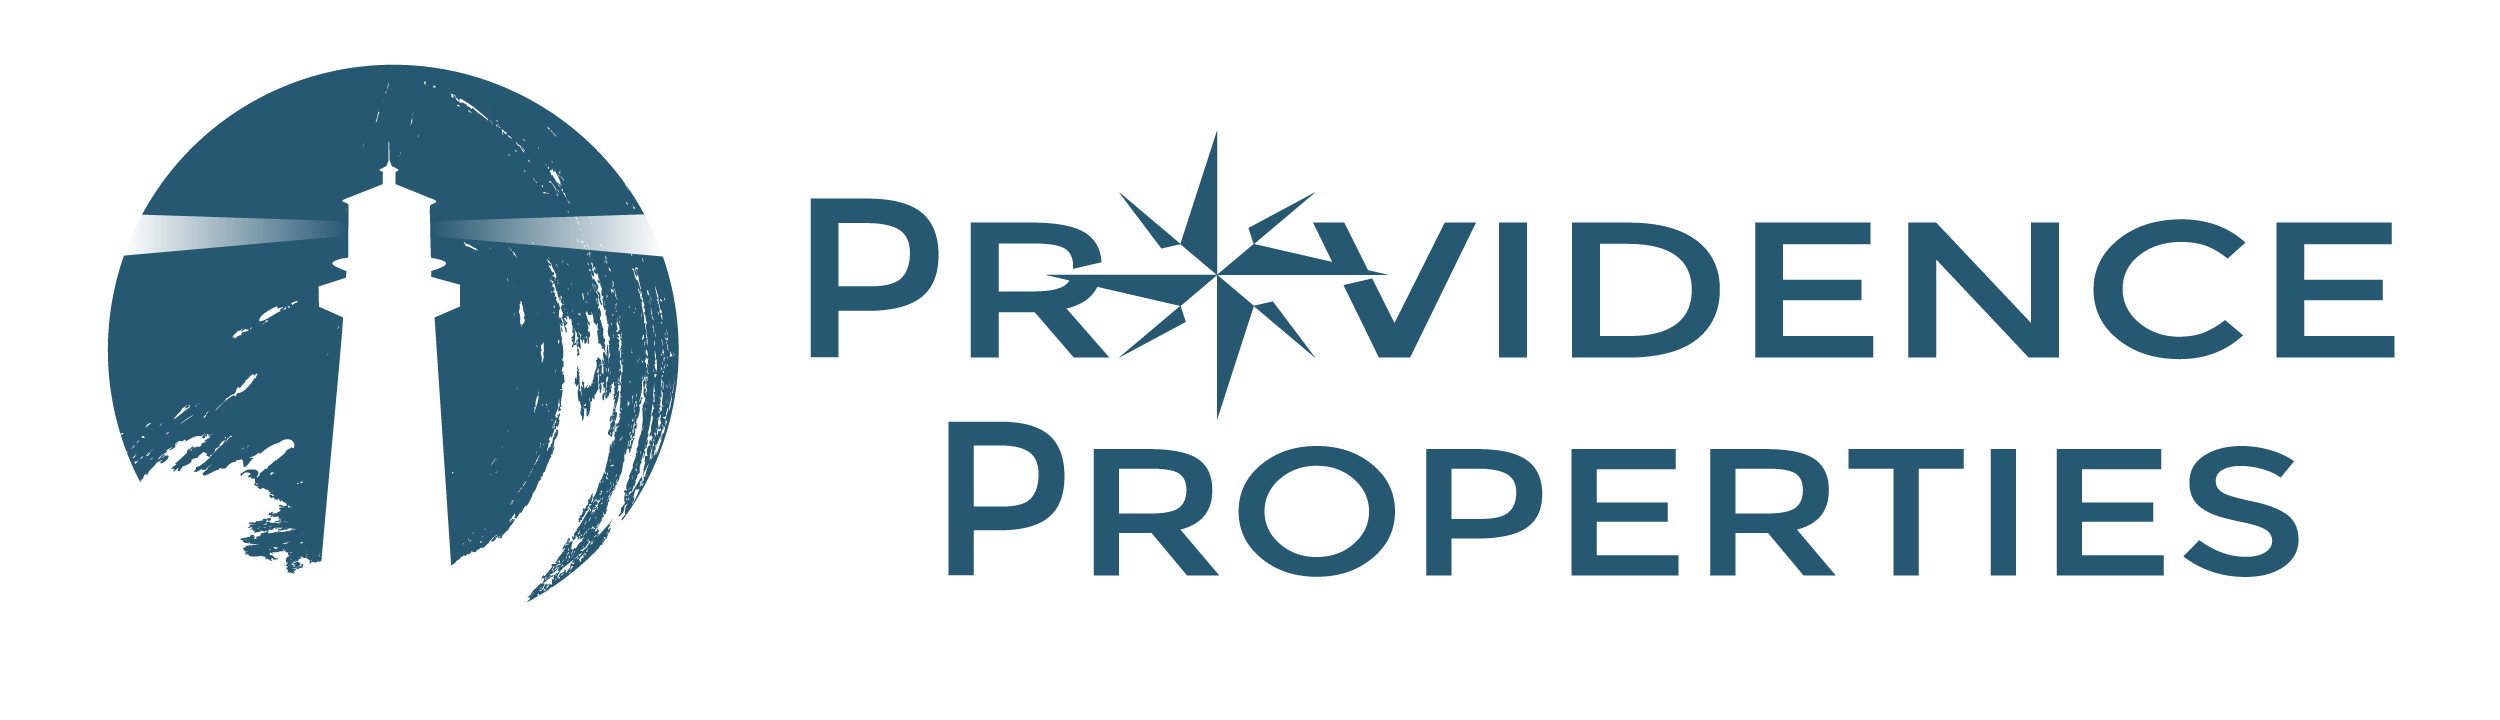 career opportunities providence properties